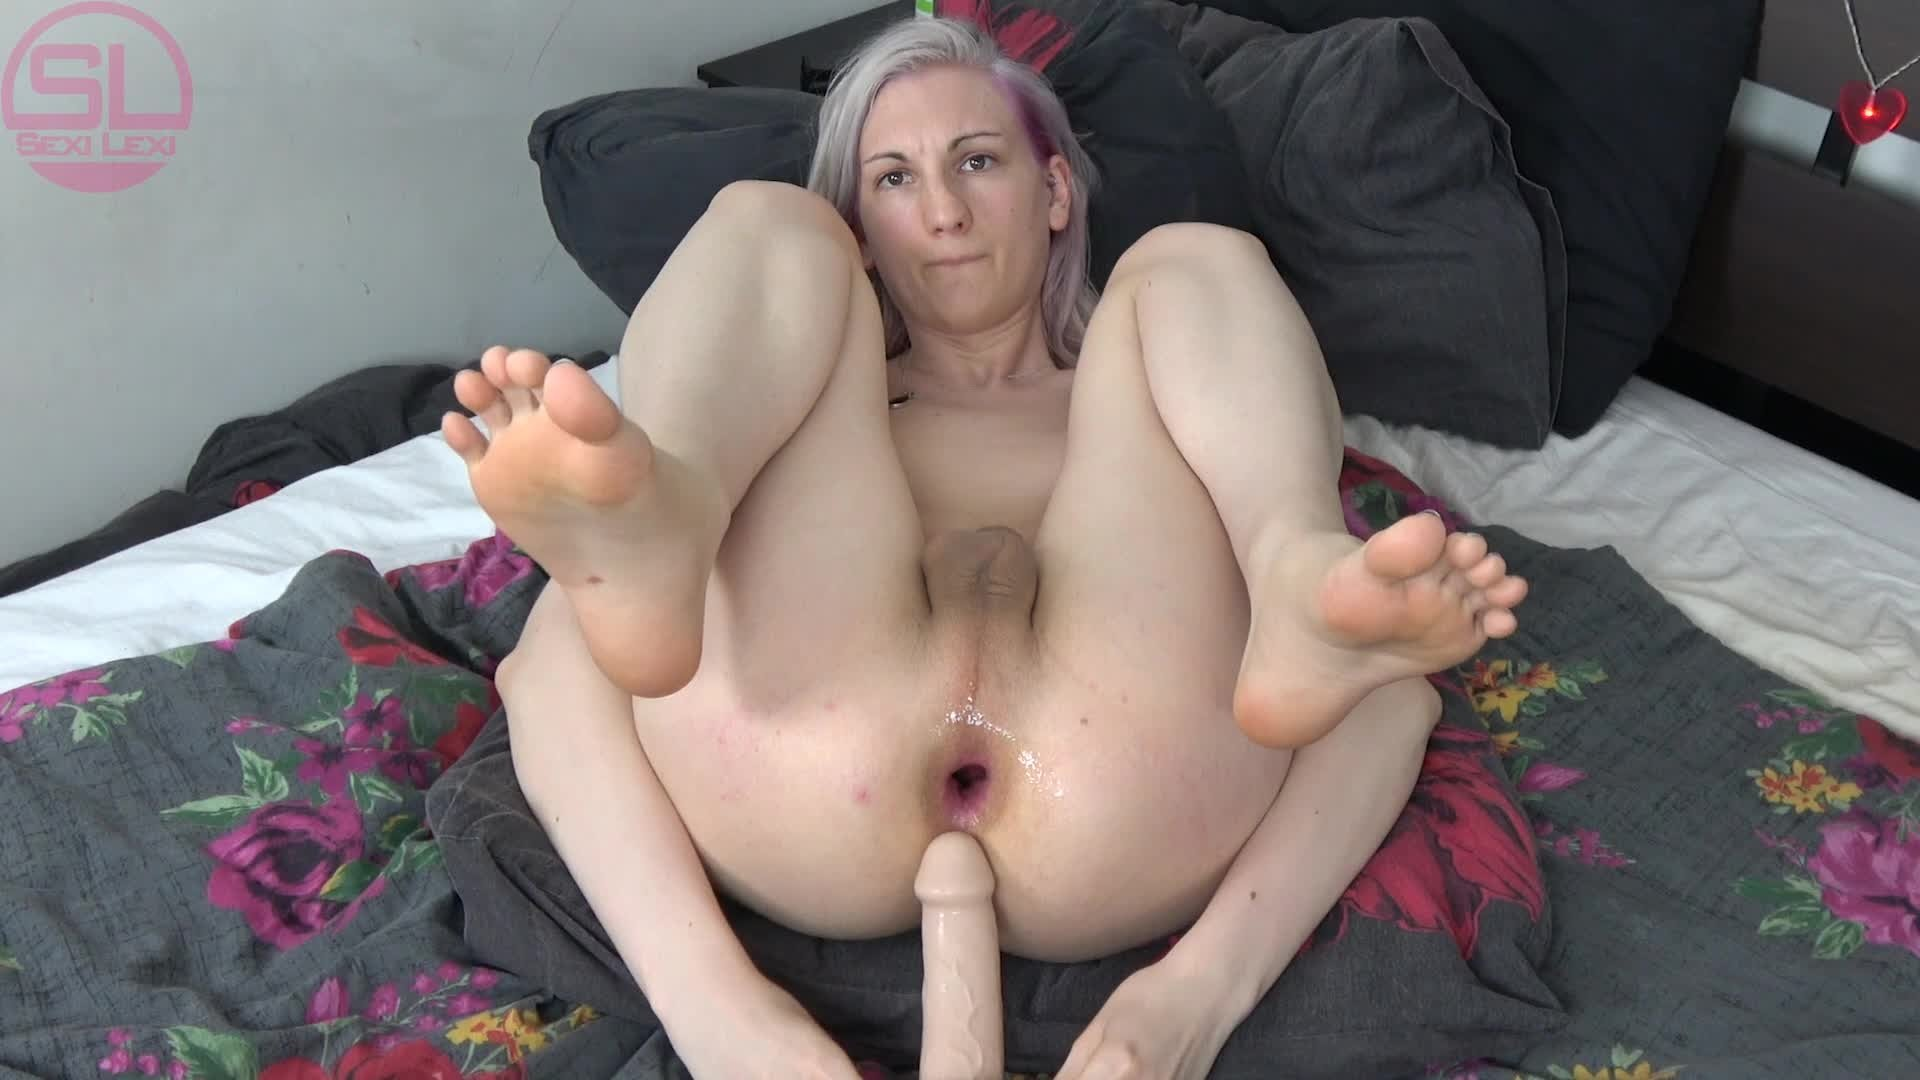 SexiLexiTrap-Manyvids-Dirty Talking-Anal, Fuck Machine, Trans